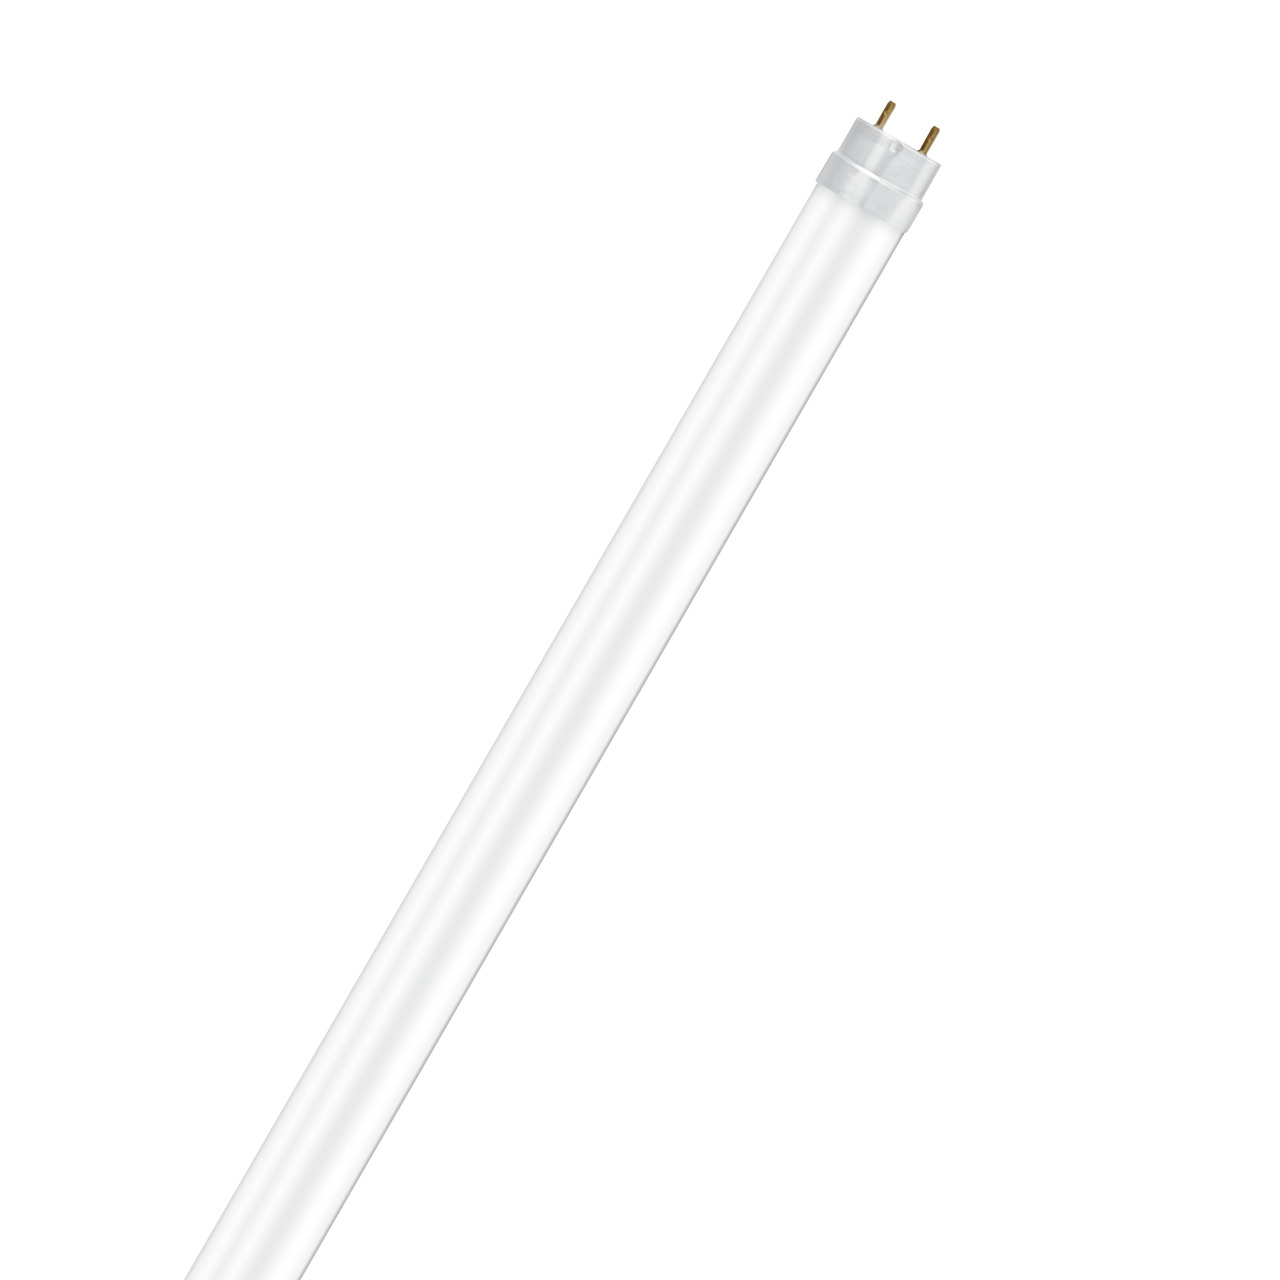 OSRAM SubstiTUBE Star 20-W-T8-LED-Röhrenlampe- 150 cm- warmweiss